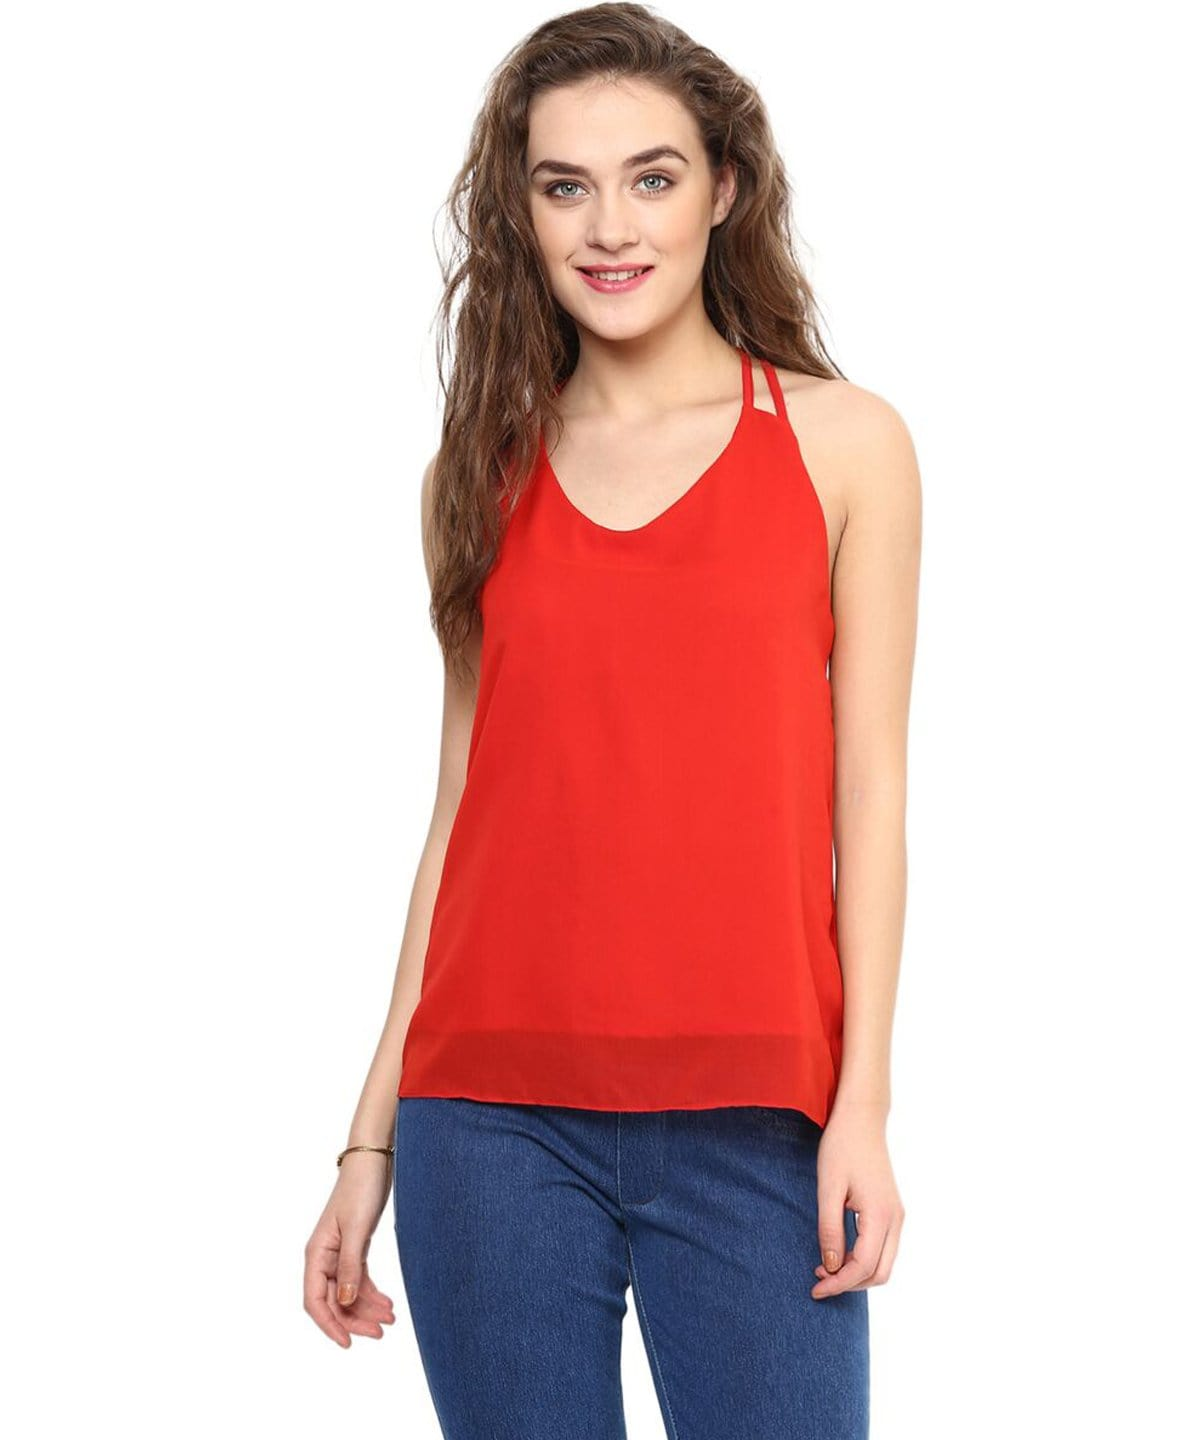 Solid Red Back Cutout Georgette Top - Uptownie